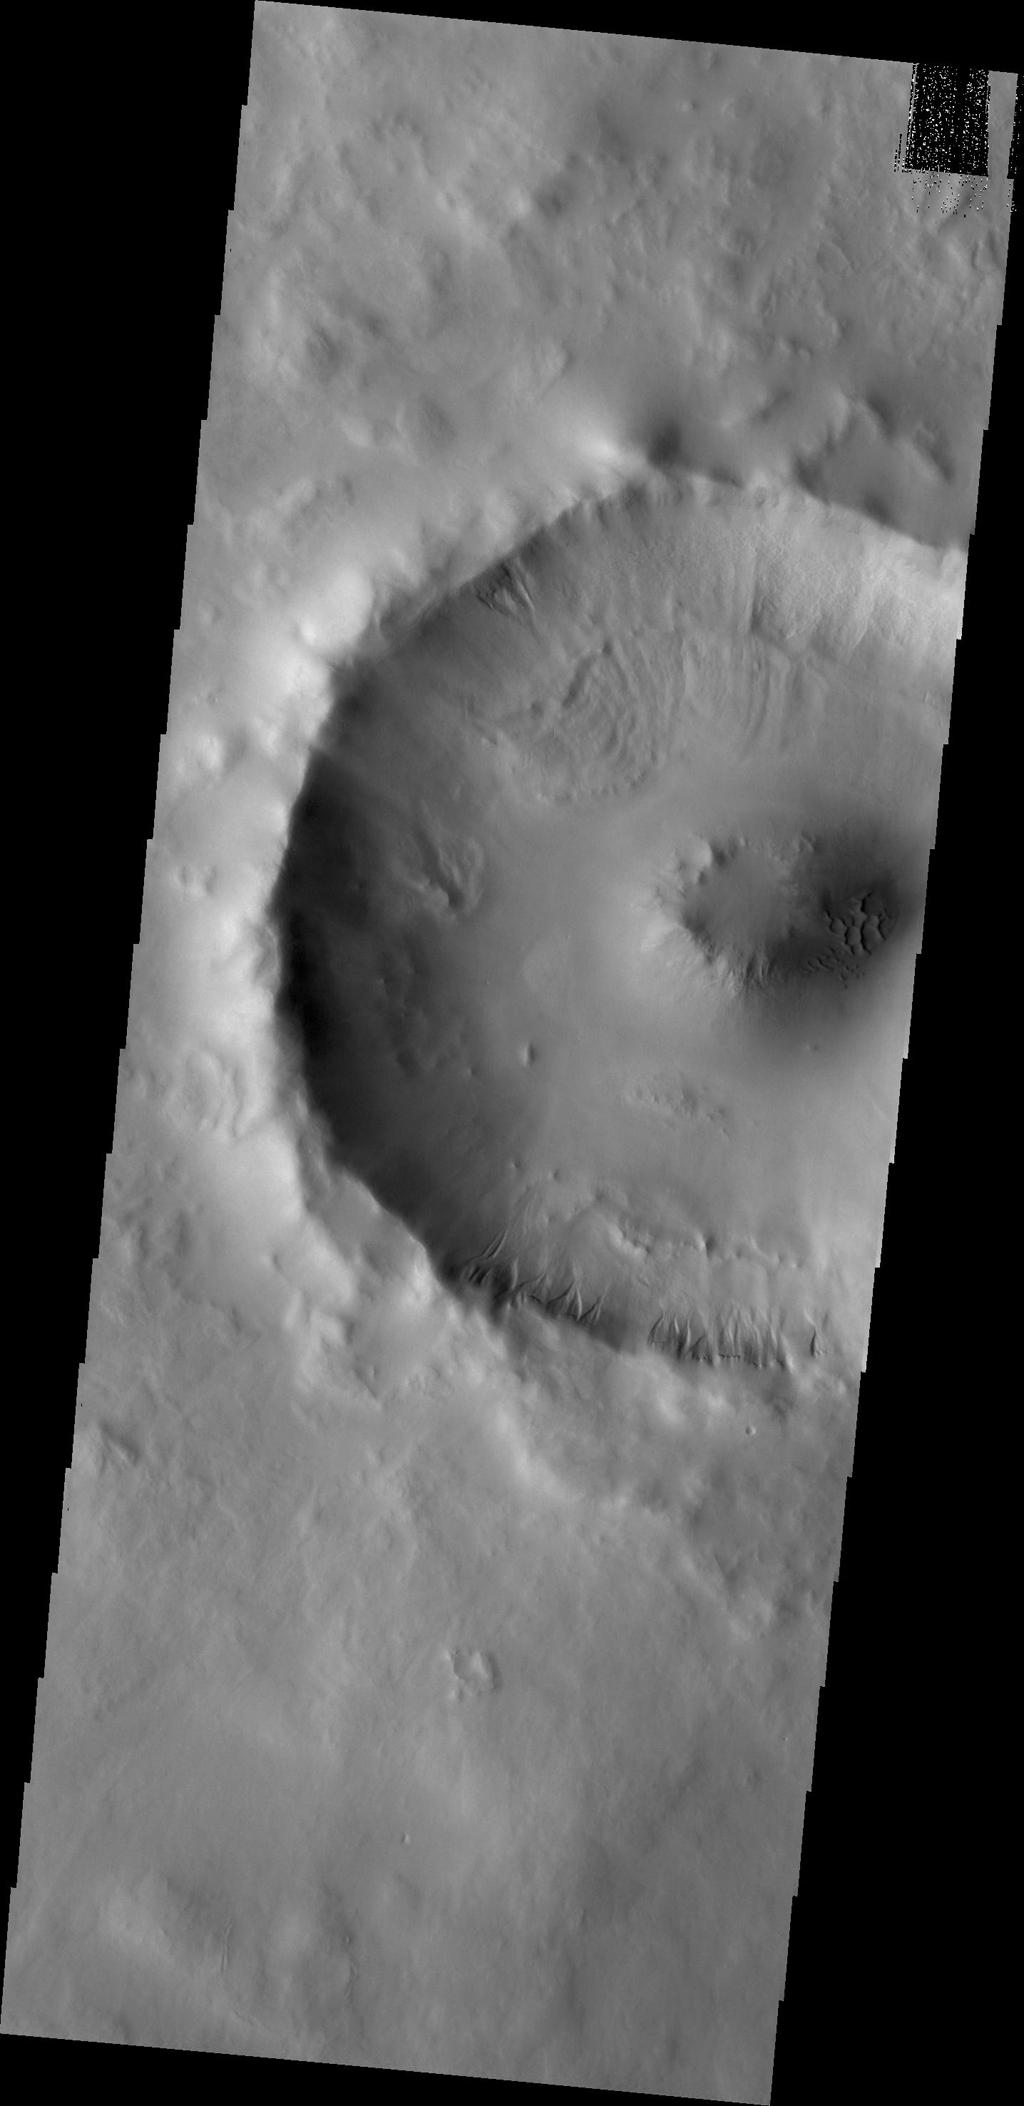 Small gullies mark the rim of this unnamed crater in Utopia Planitia in this image from NASA's Mars Odyssey.